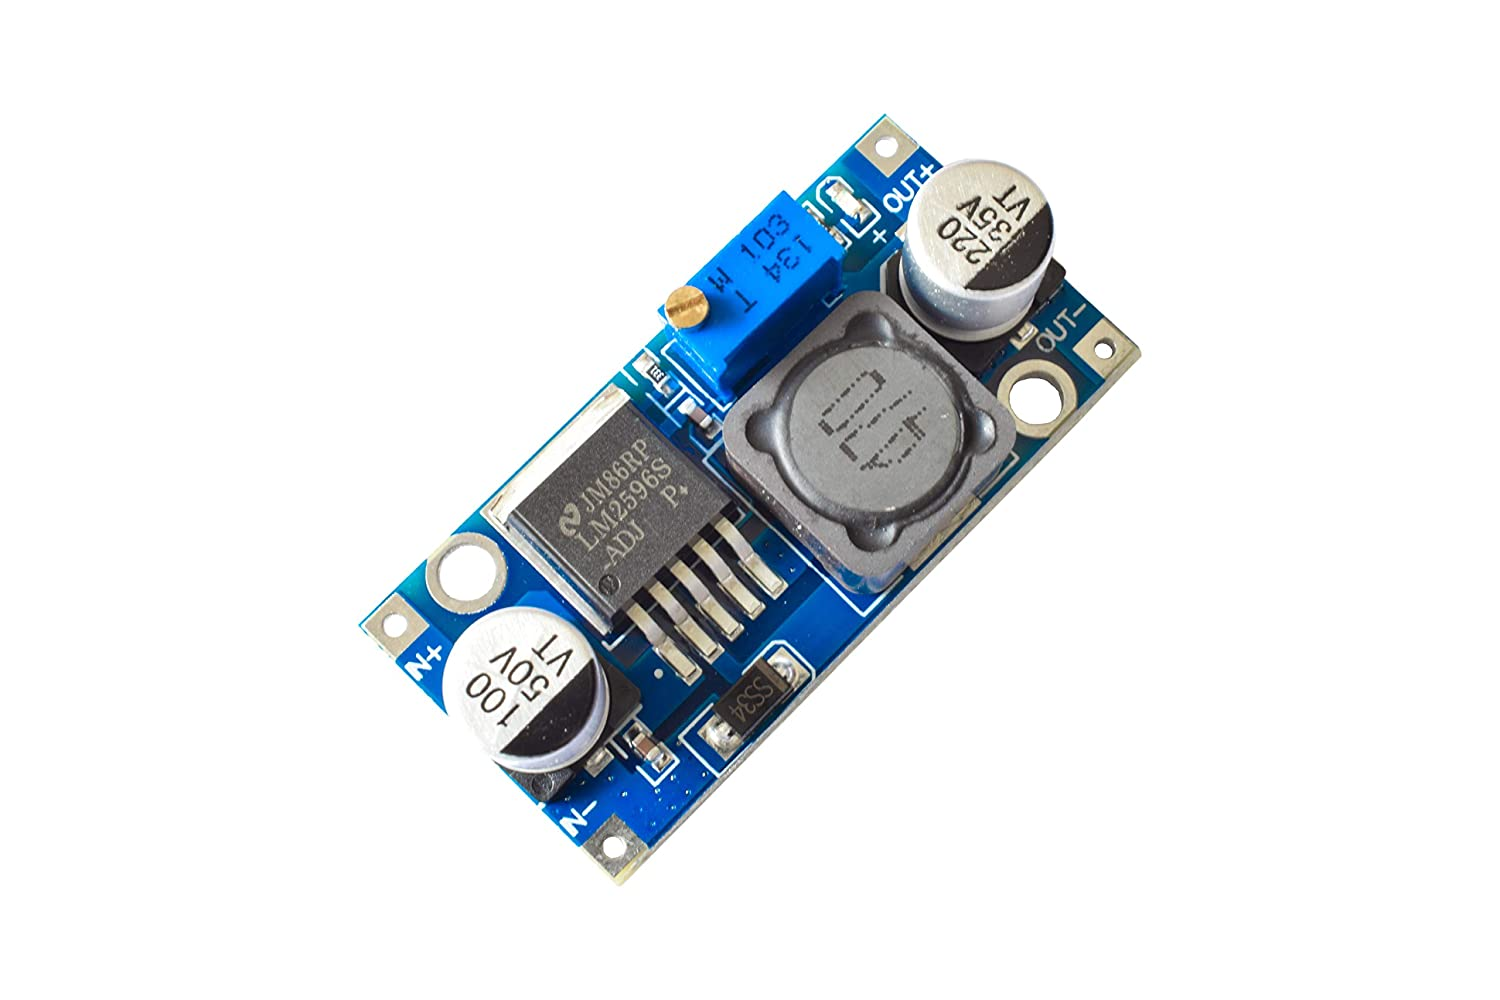 5x LM2596S 3V-40V to 1.5V-35V 3A Step Down Power Supply Converter Module DC